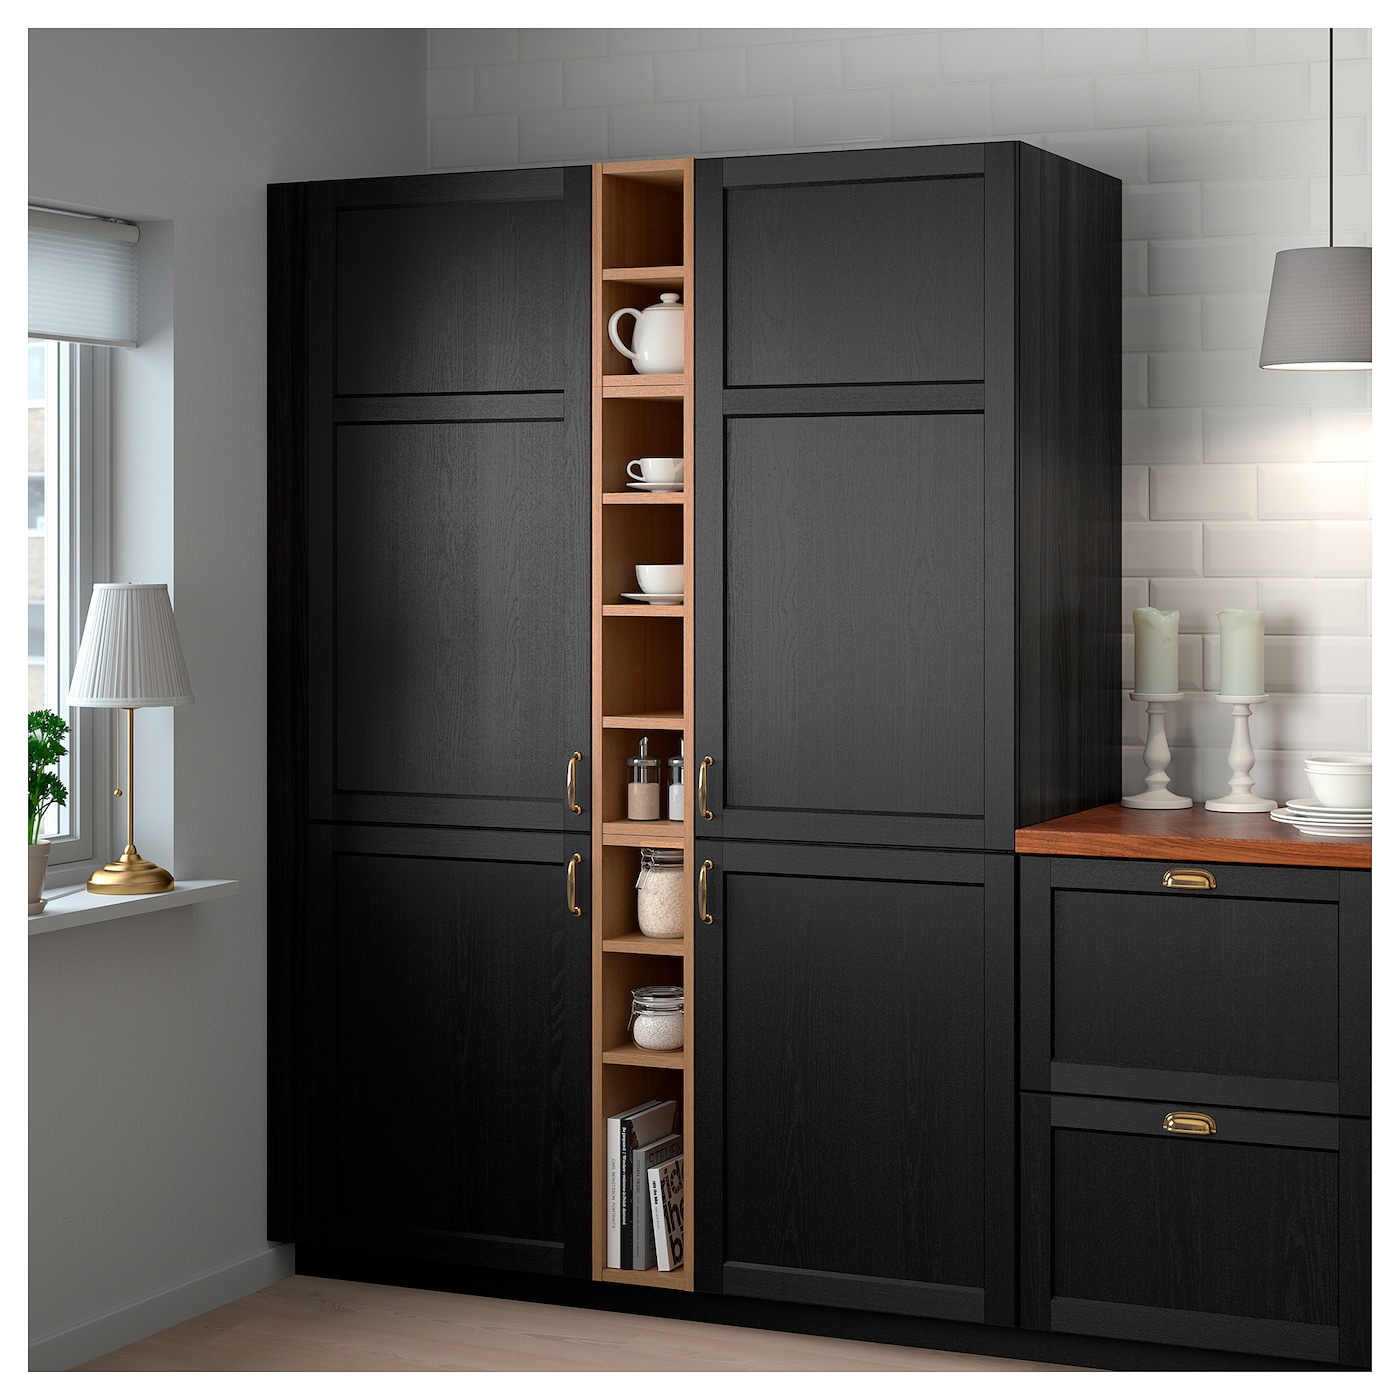 Ikea Vadholma Open Storage Makes The Contents Of Cabinet Easy To Overview And Access